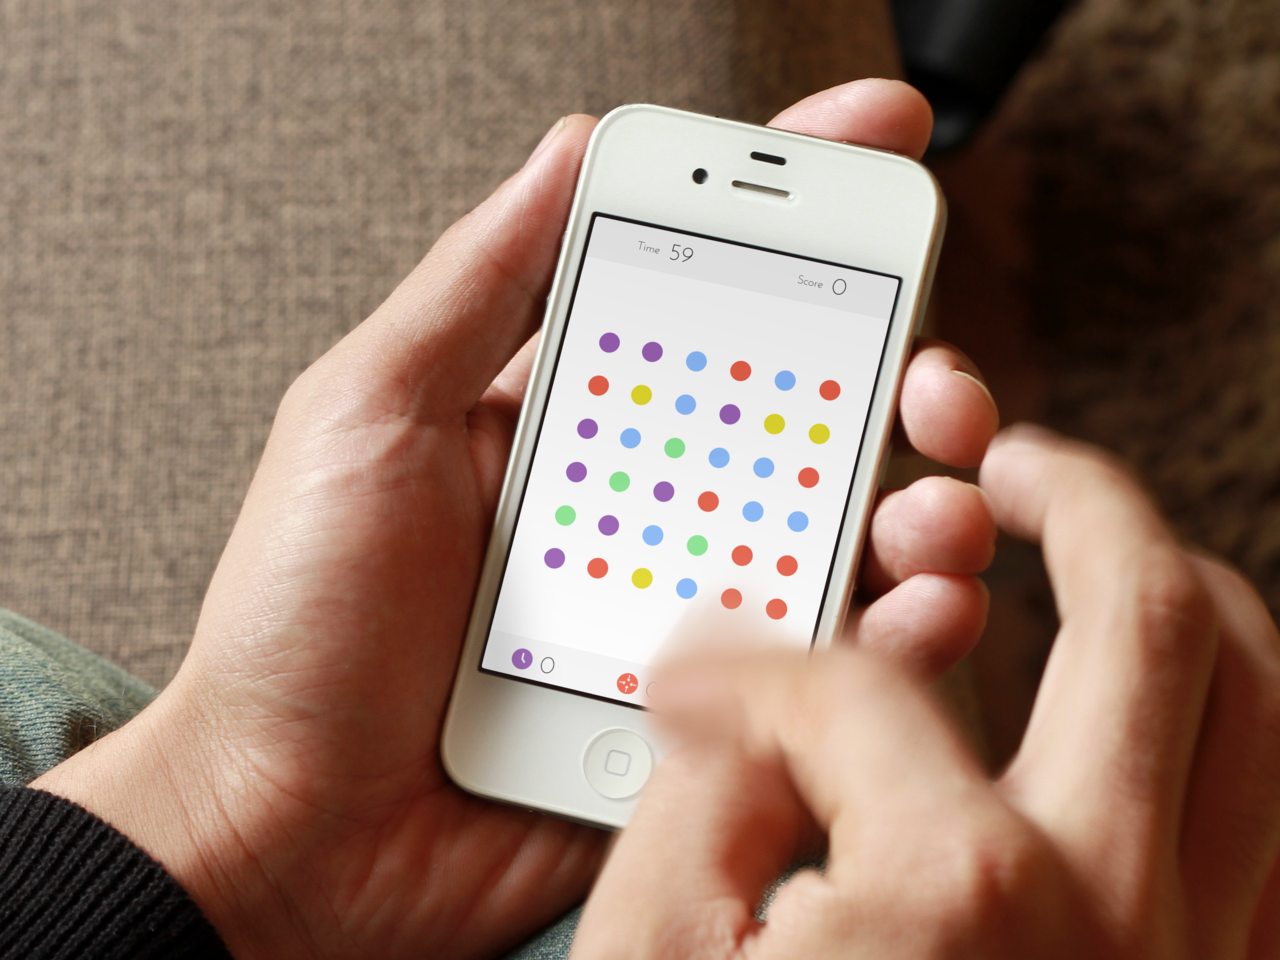 Person playing Dots game on mobile device